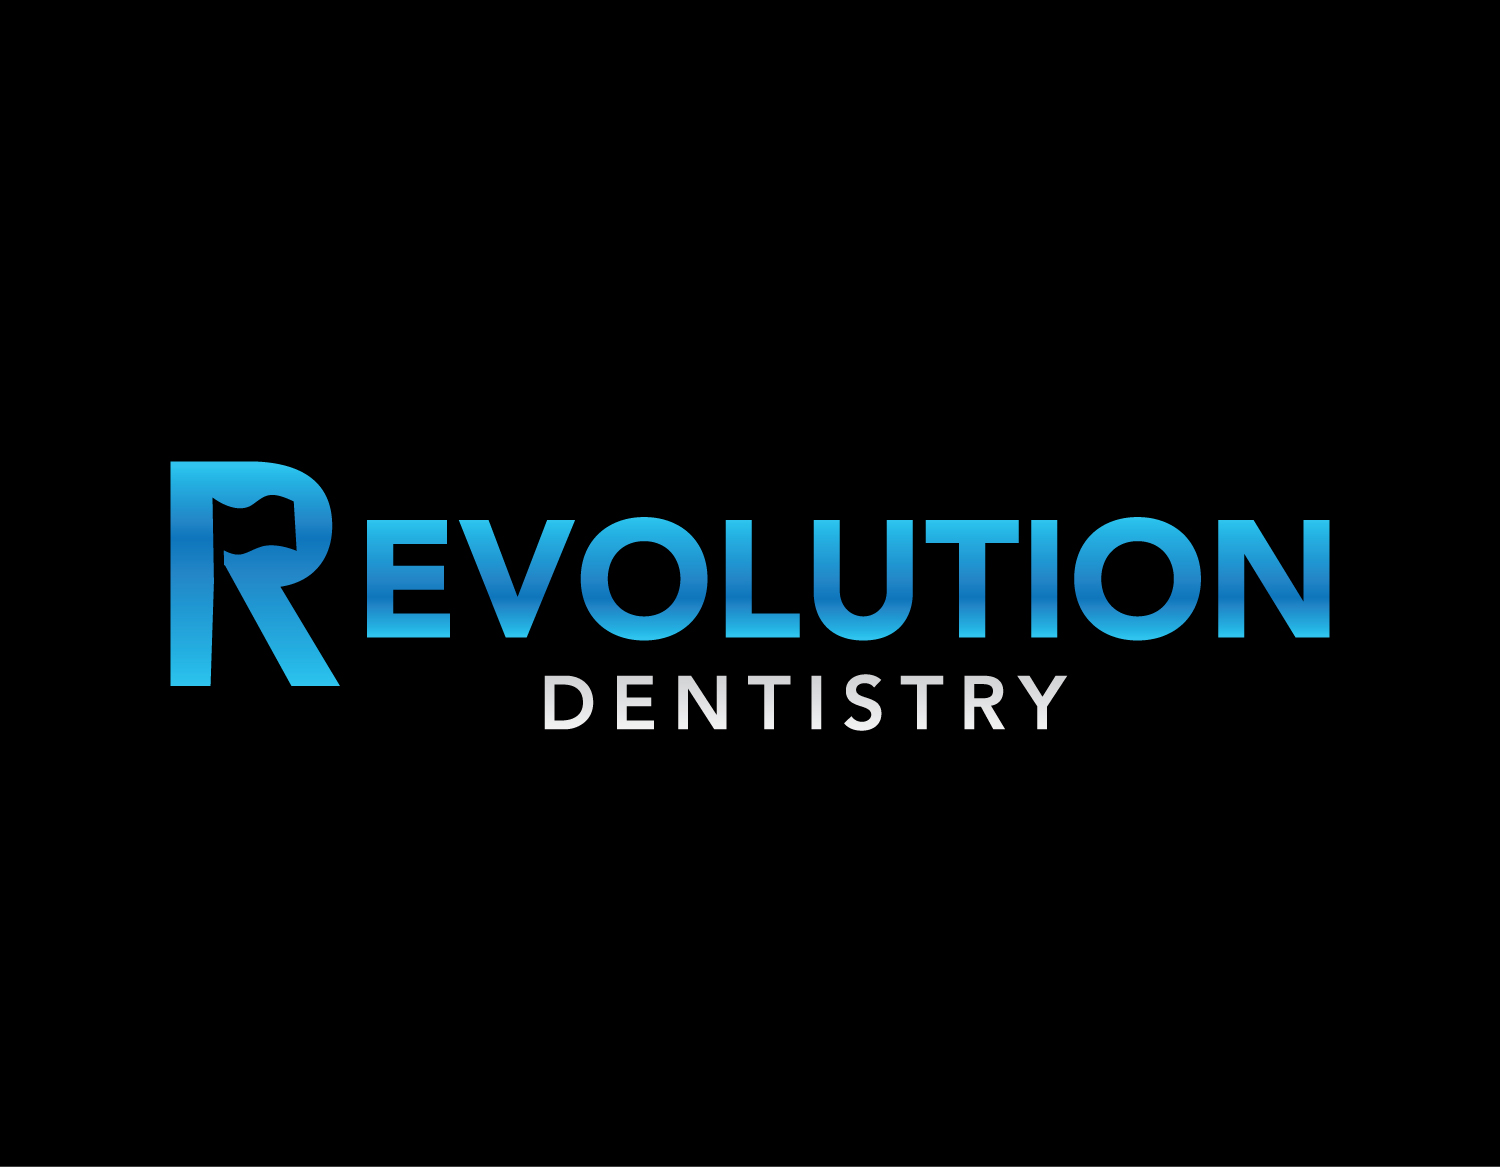 Logo Design by rA - Entry No. 199 in the Logo Design Contest Artistic Logo Design for Revolution Dentistry.